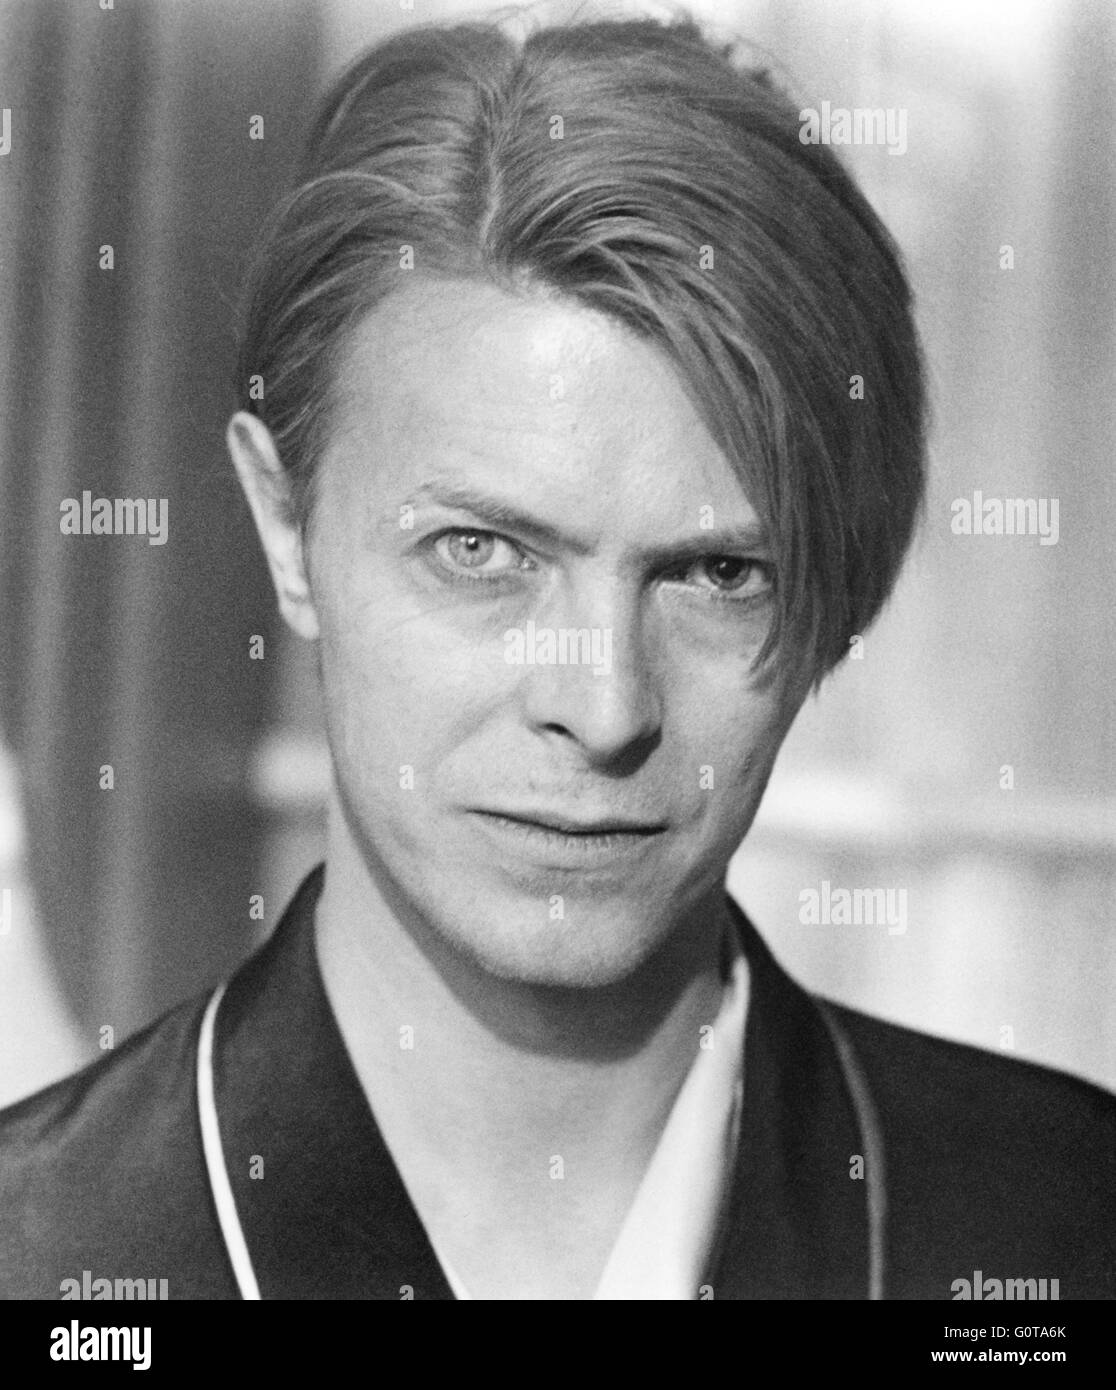 David Bowie in The Hunger directed by Tony Scott (1983) - Stock Image